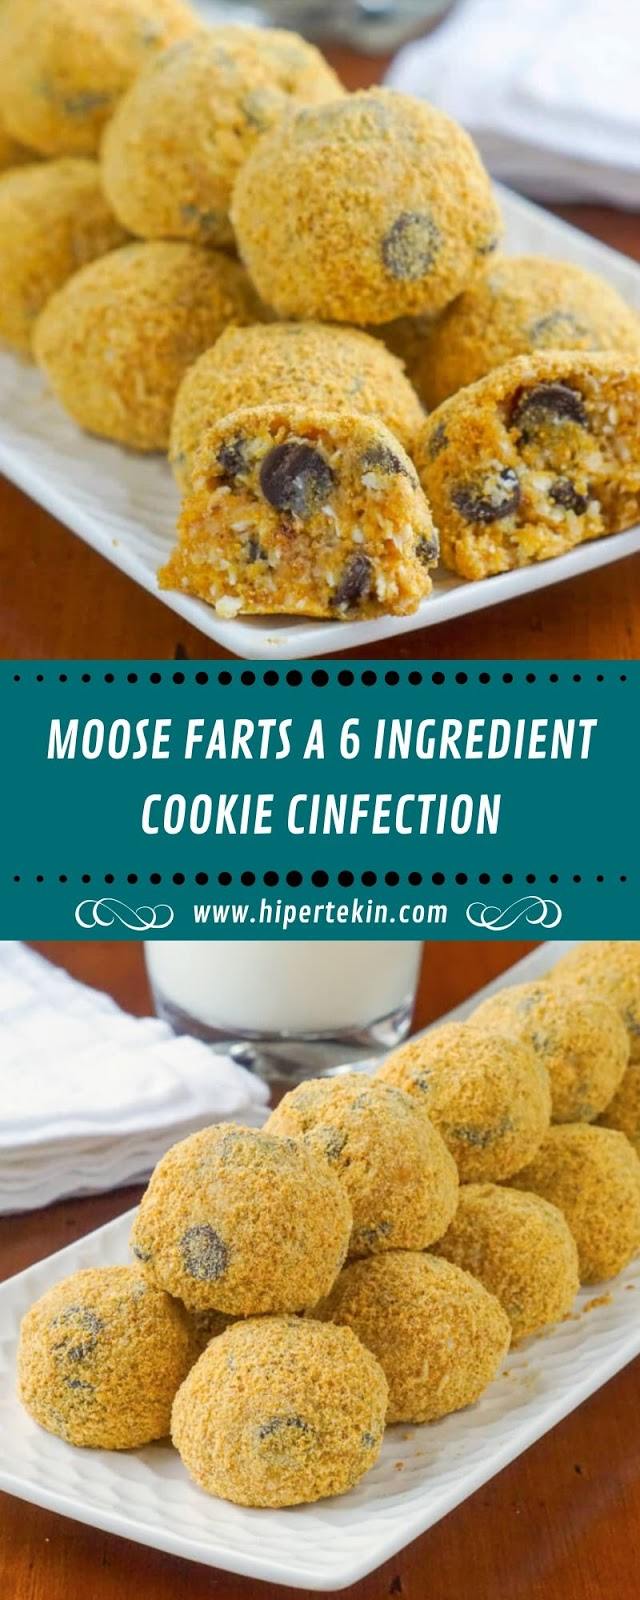 MOOSE FARTS A 6 INGREDIENT COOKIE CINFECTION